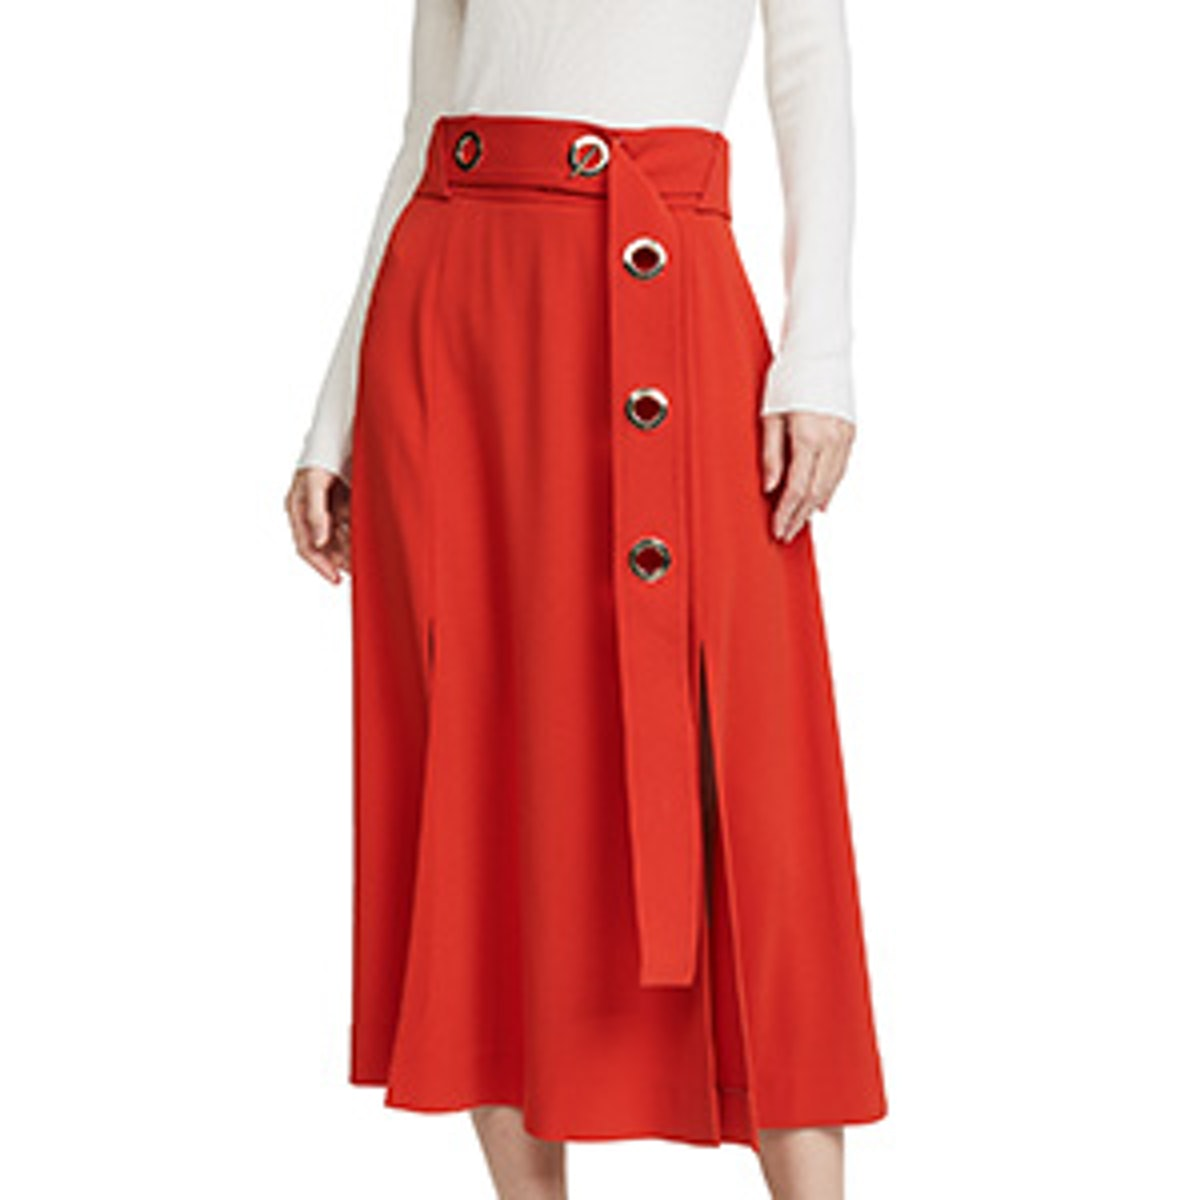 Belted Midi Skirt with Slits